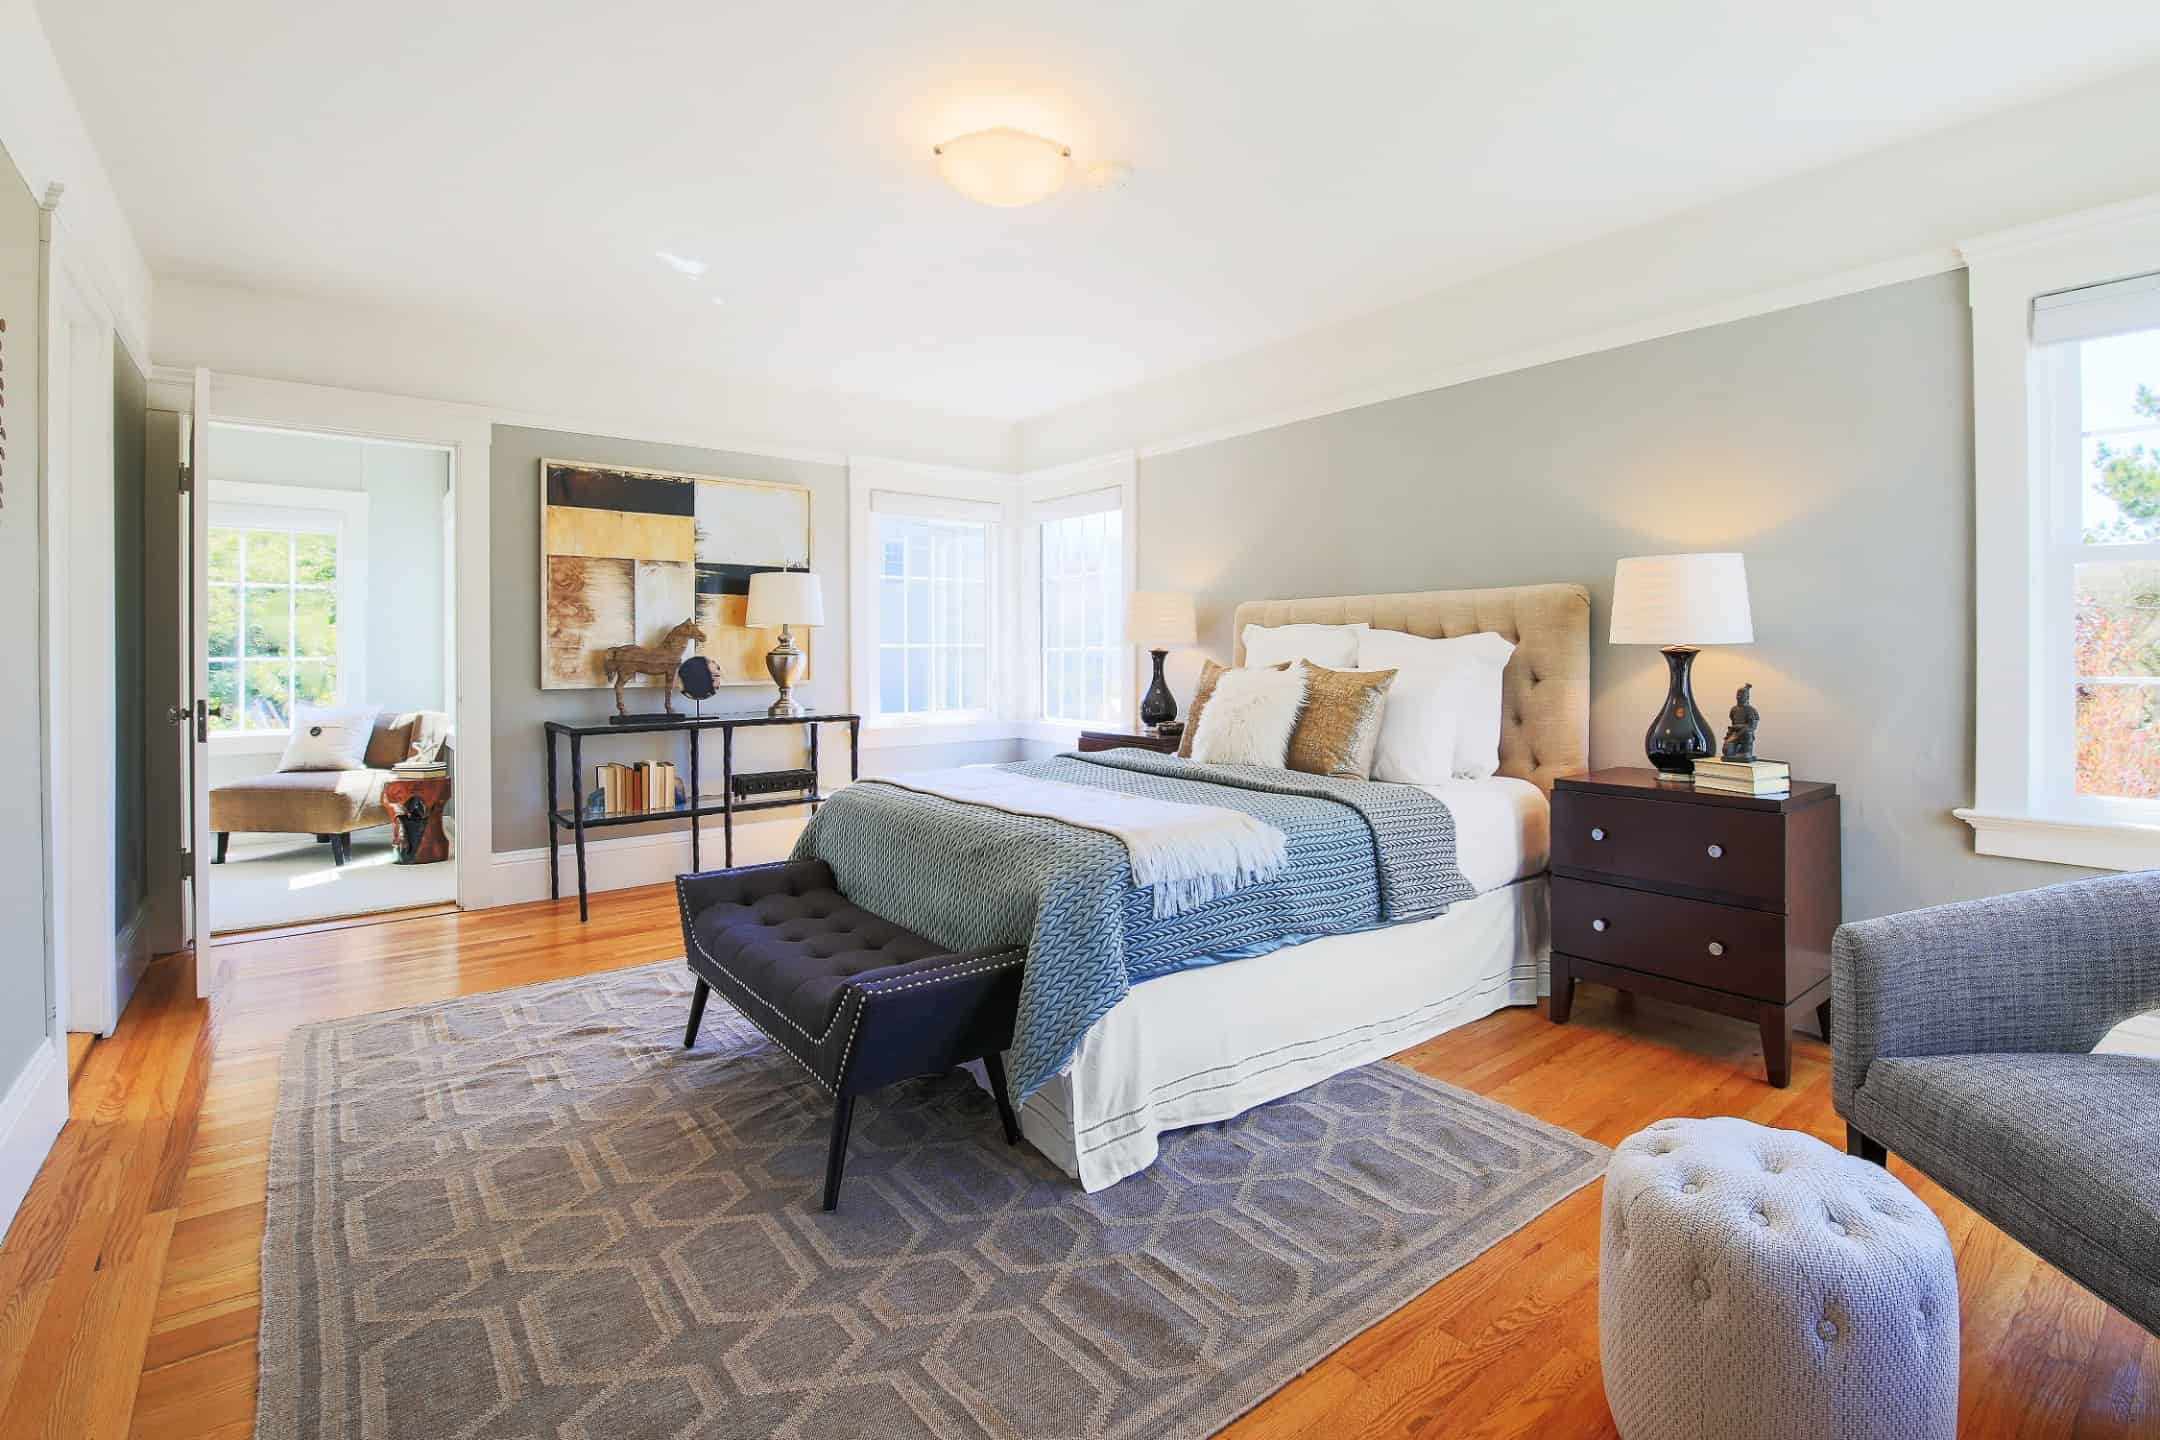 6 Revitalizing Bedroom Remodel Ideas Survey 1 Inc